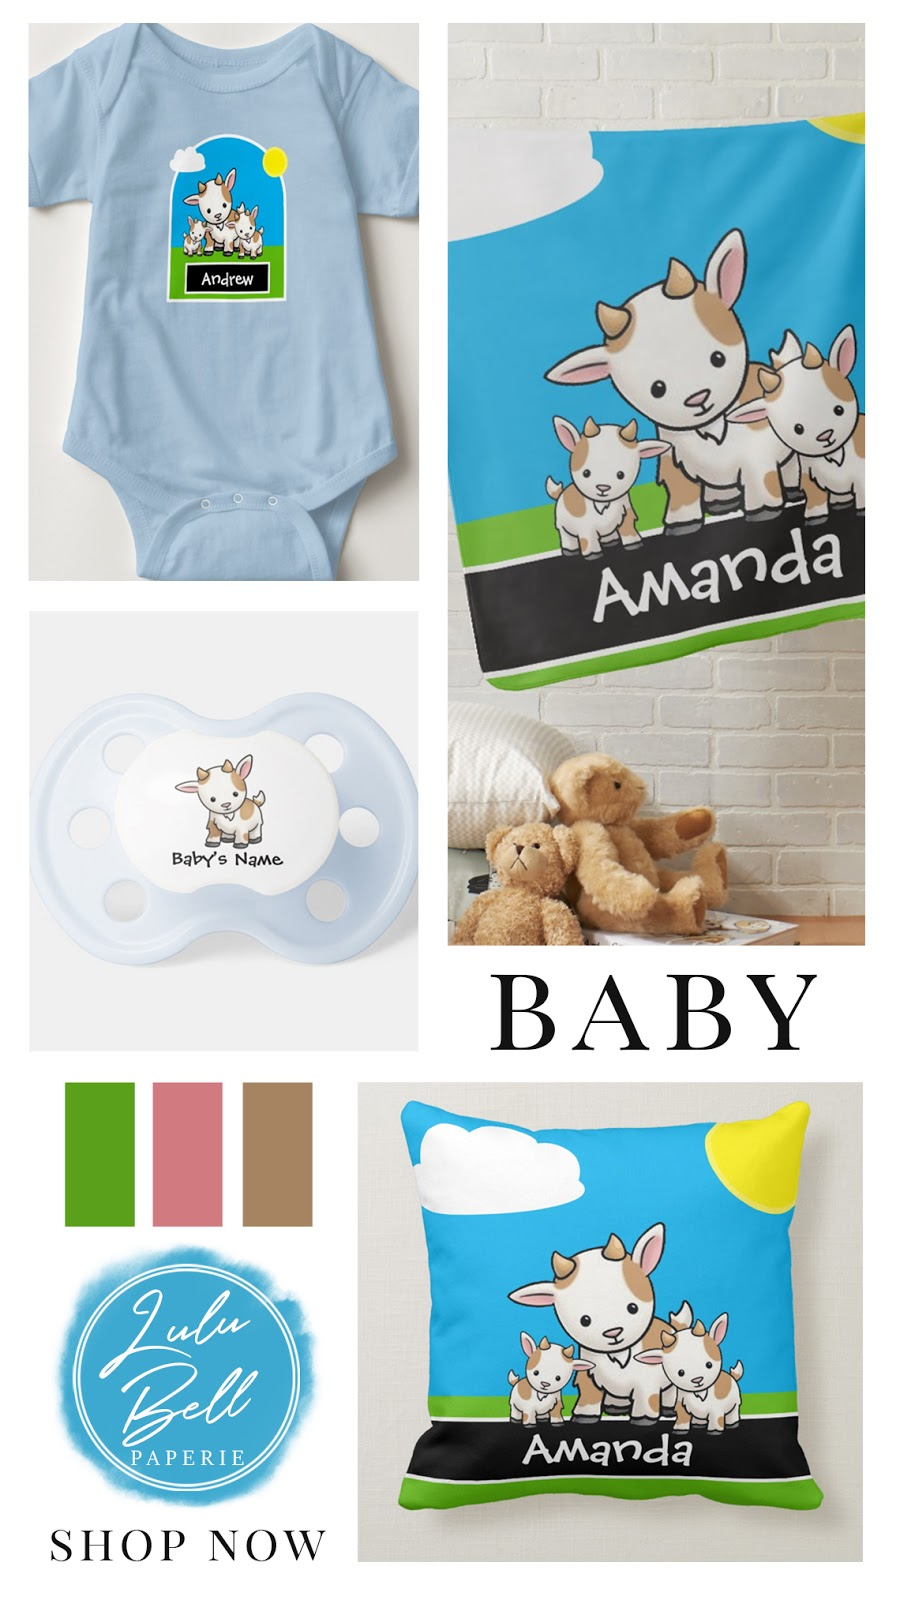 Baby Goats Personalized Nursery Collection - pillow, pacifier, blanket, and baby bodysuit with custom name.